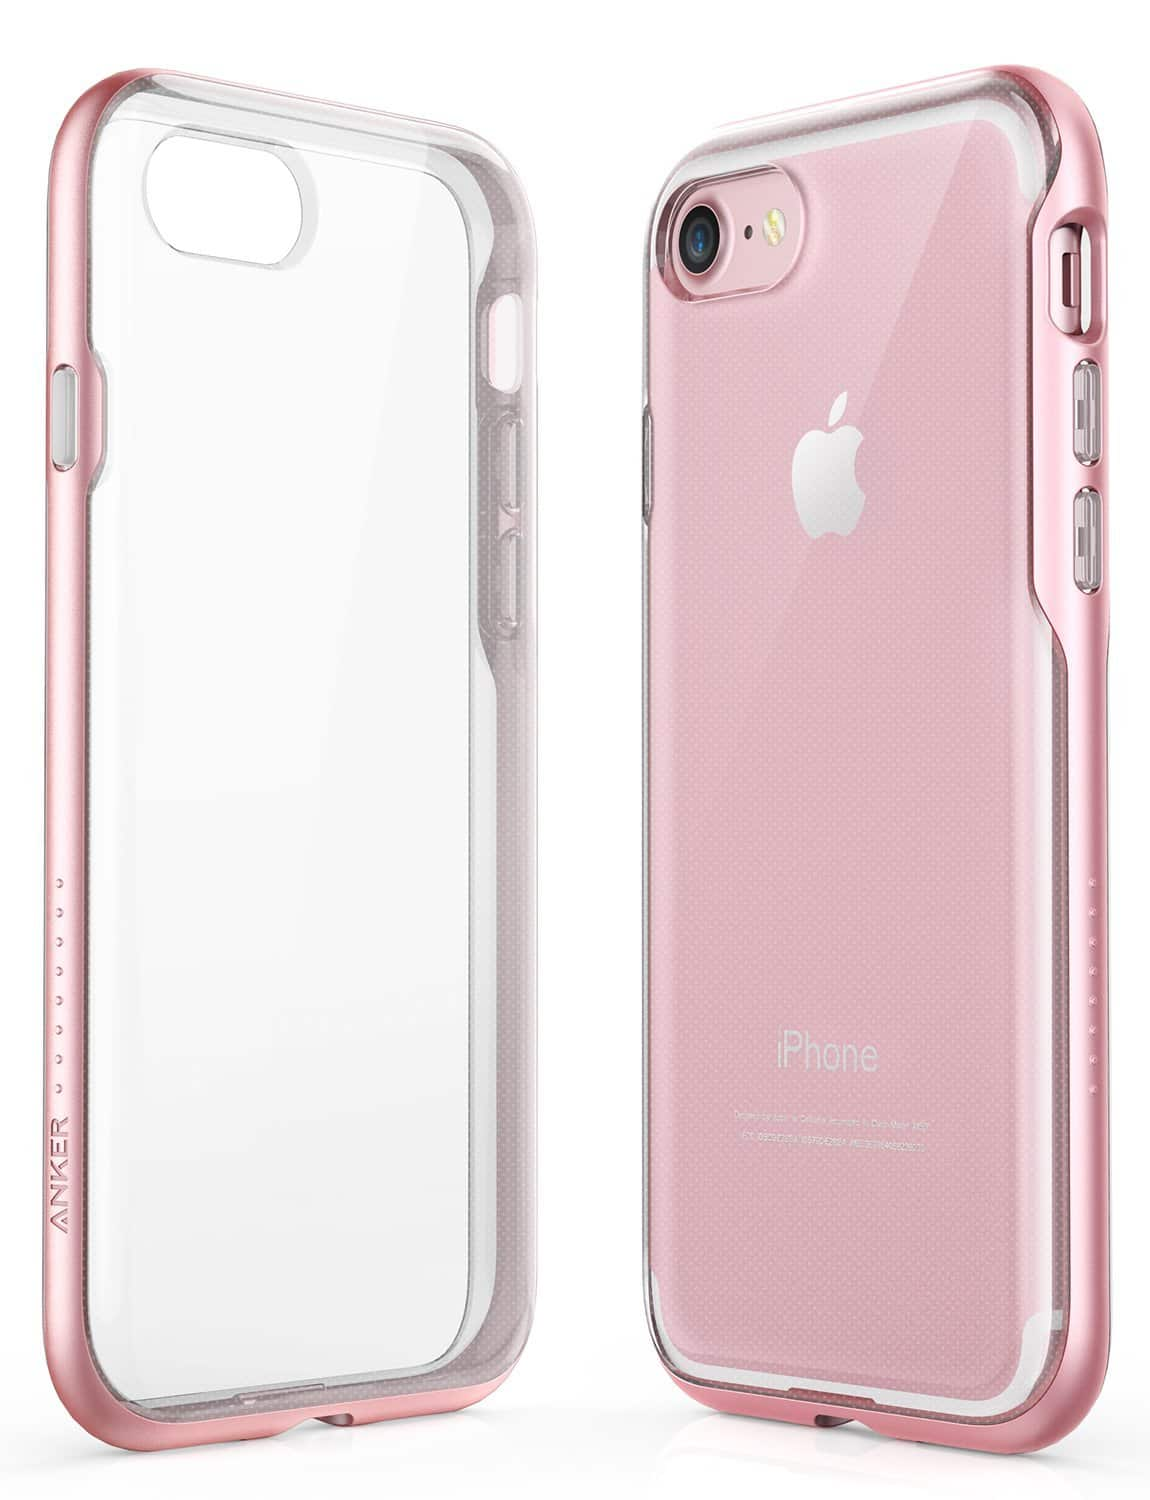 Anker Cases and Protectors for iPhone X / 8+ / 8 from $3.49 + free prime shipping